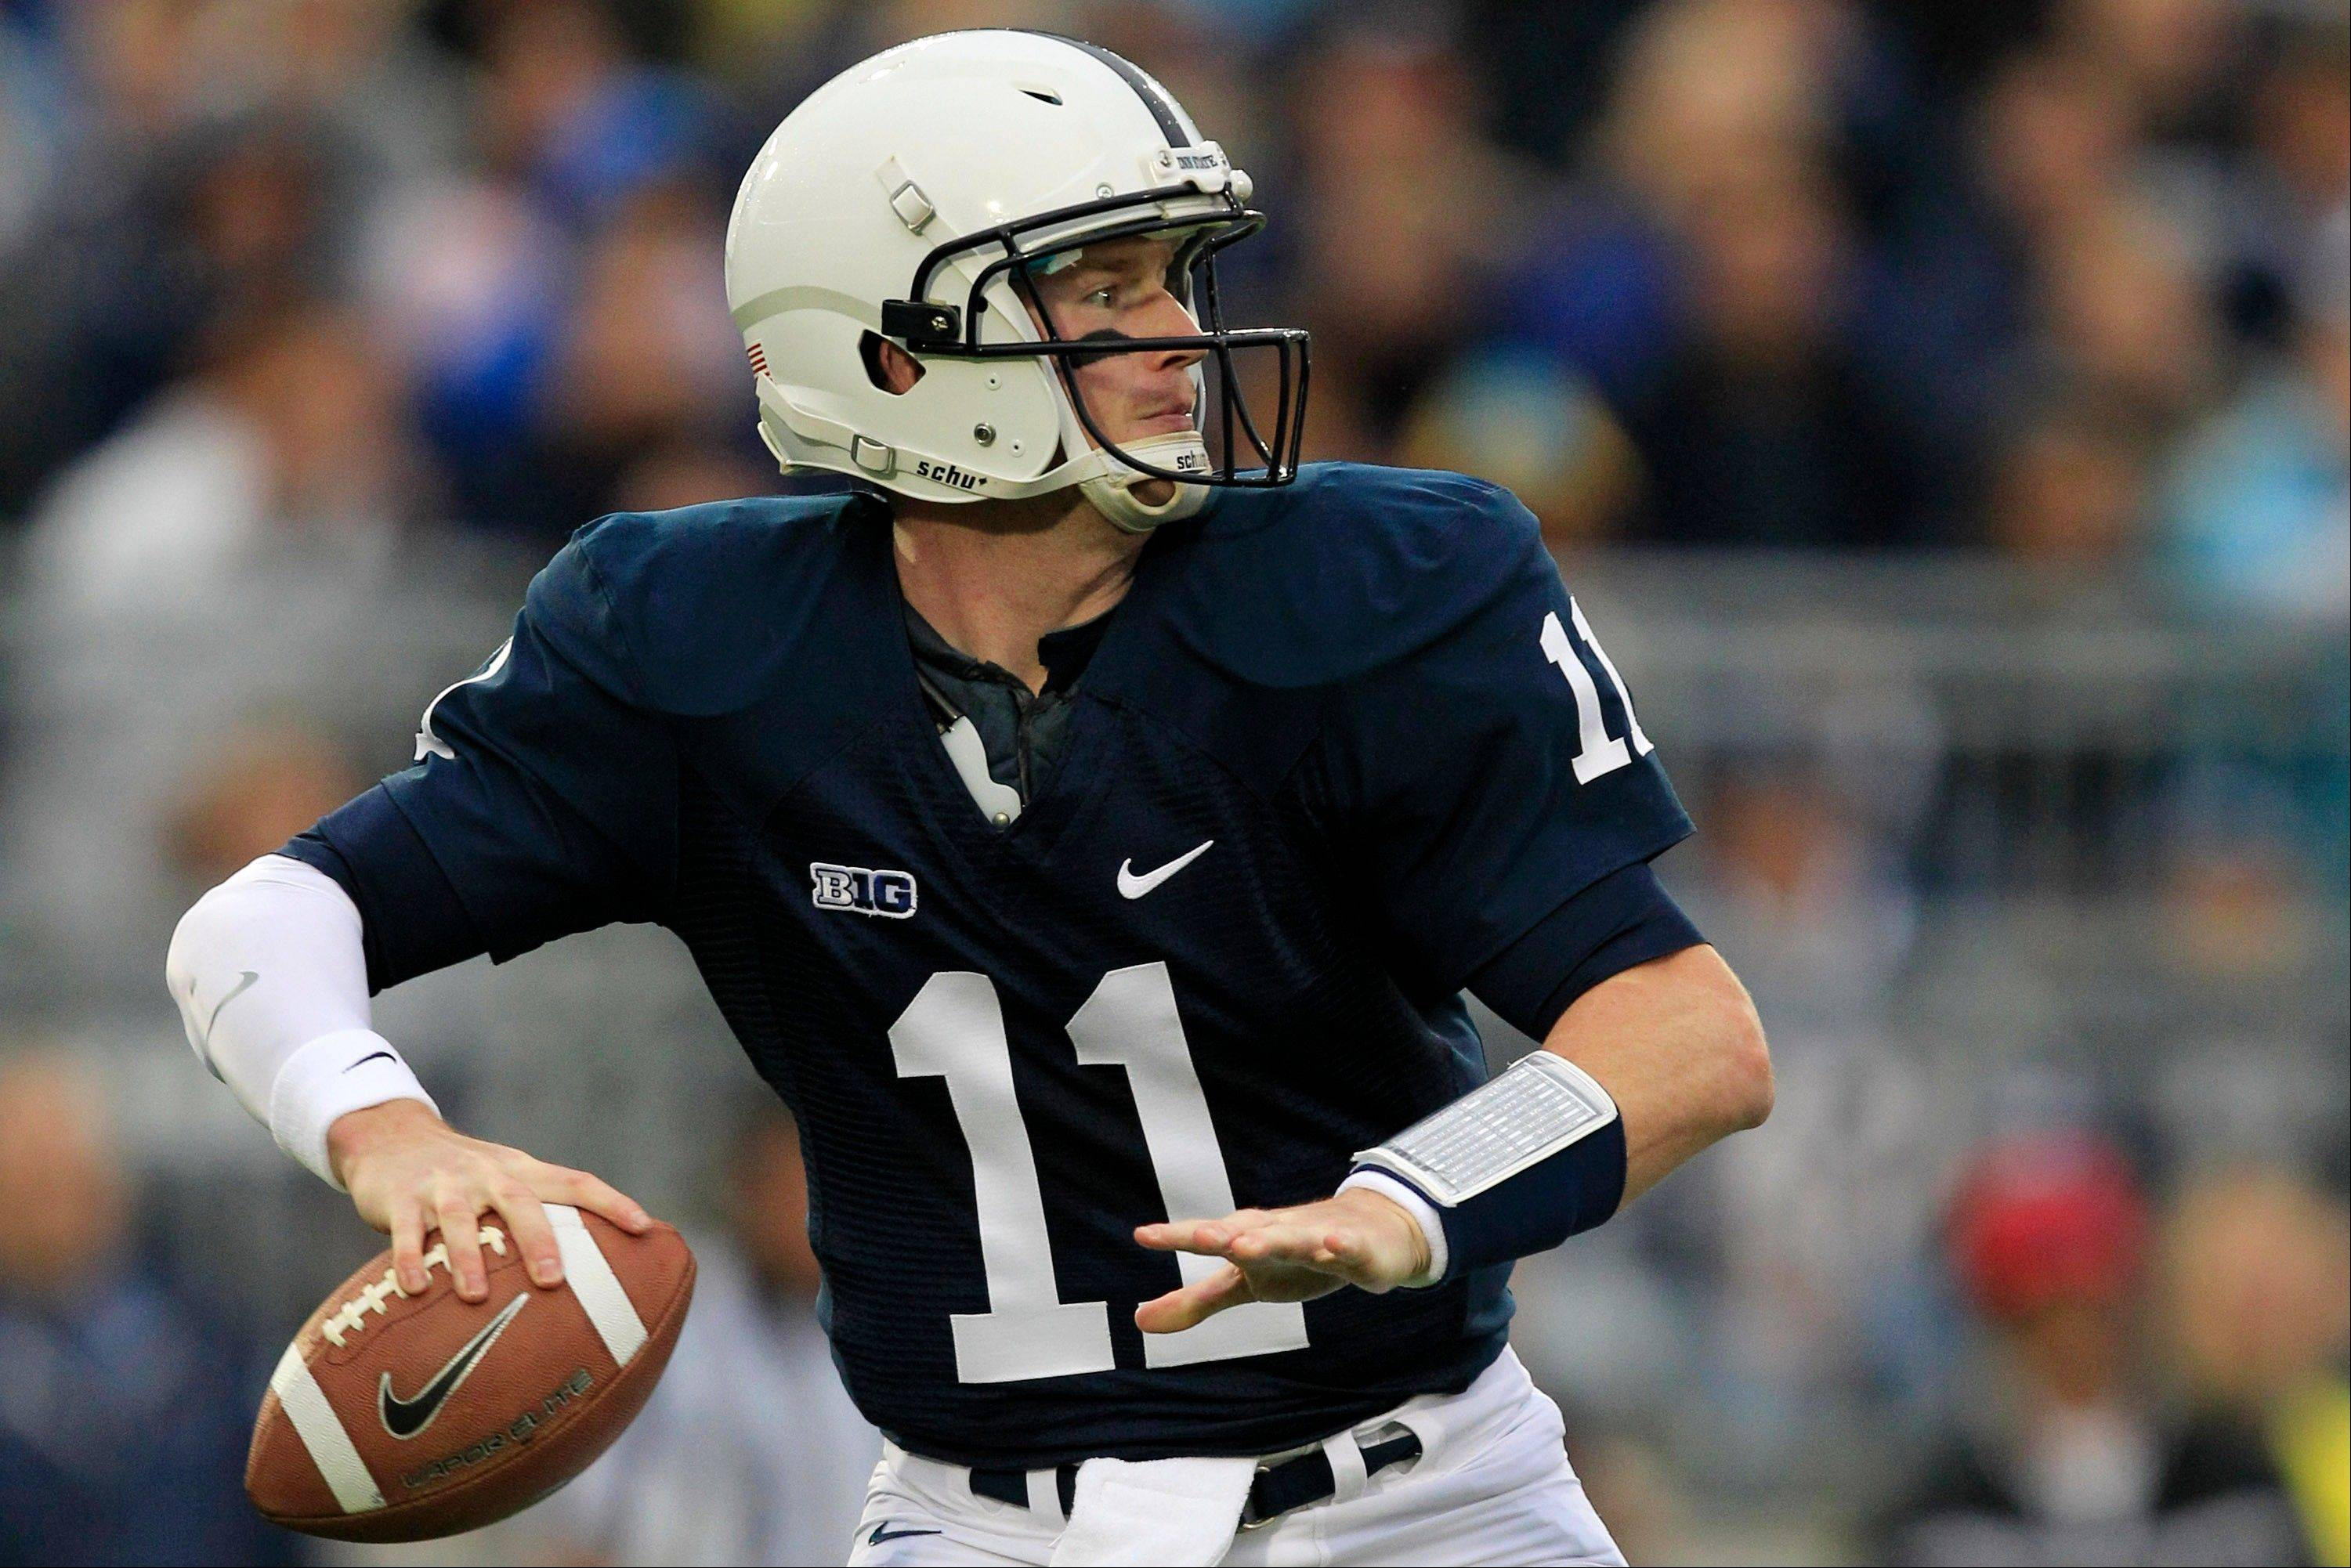 Penn State quarterback Matthew McGloin looks to pass during the first quarter against Temple in State College, Pa., earlier this season.